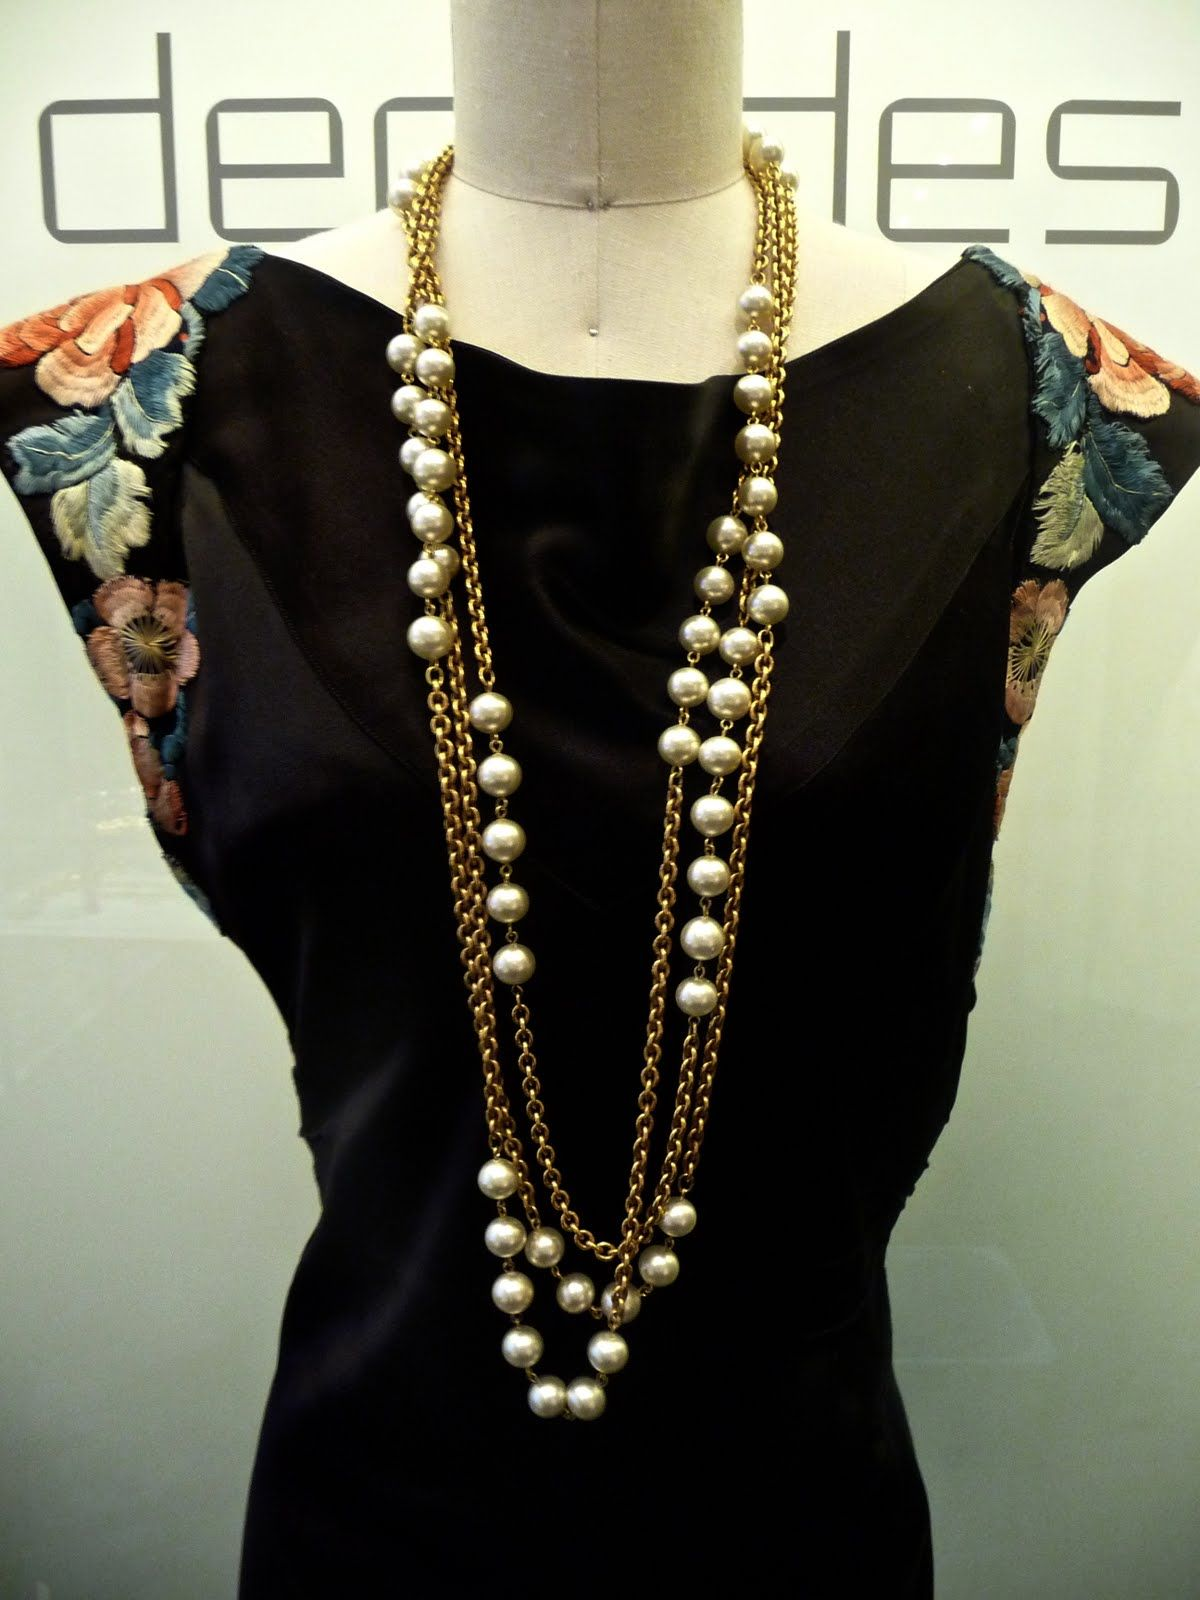 Chanel Triple Connected Gold Chain With Pearls Circa 1980s From Decades